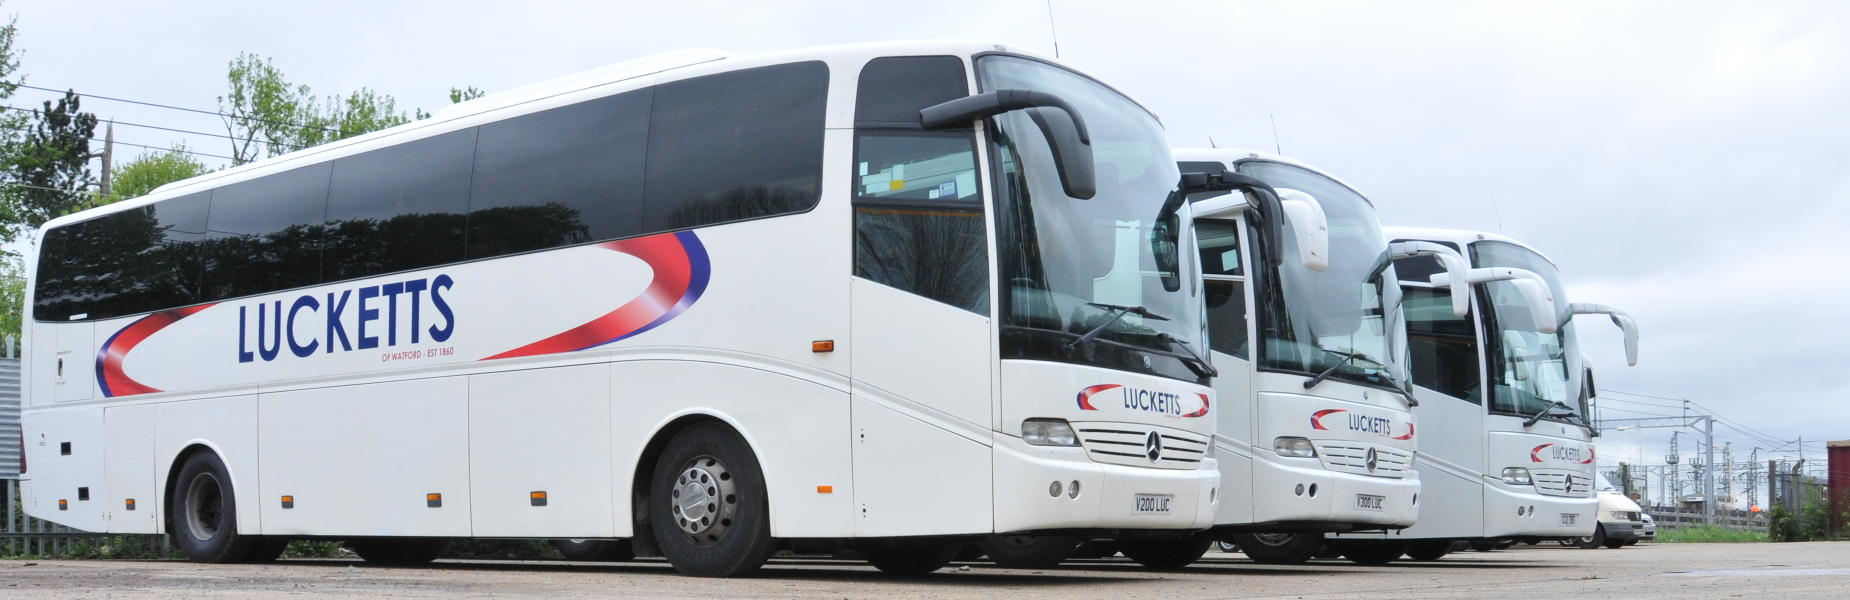 UK's leading Coach Hire Company